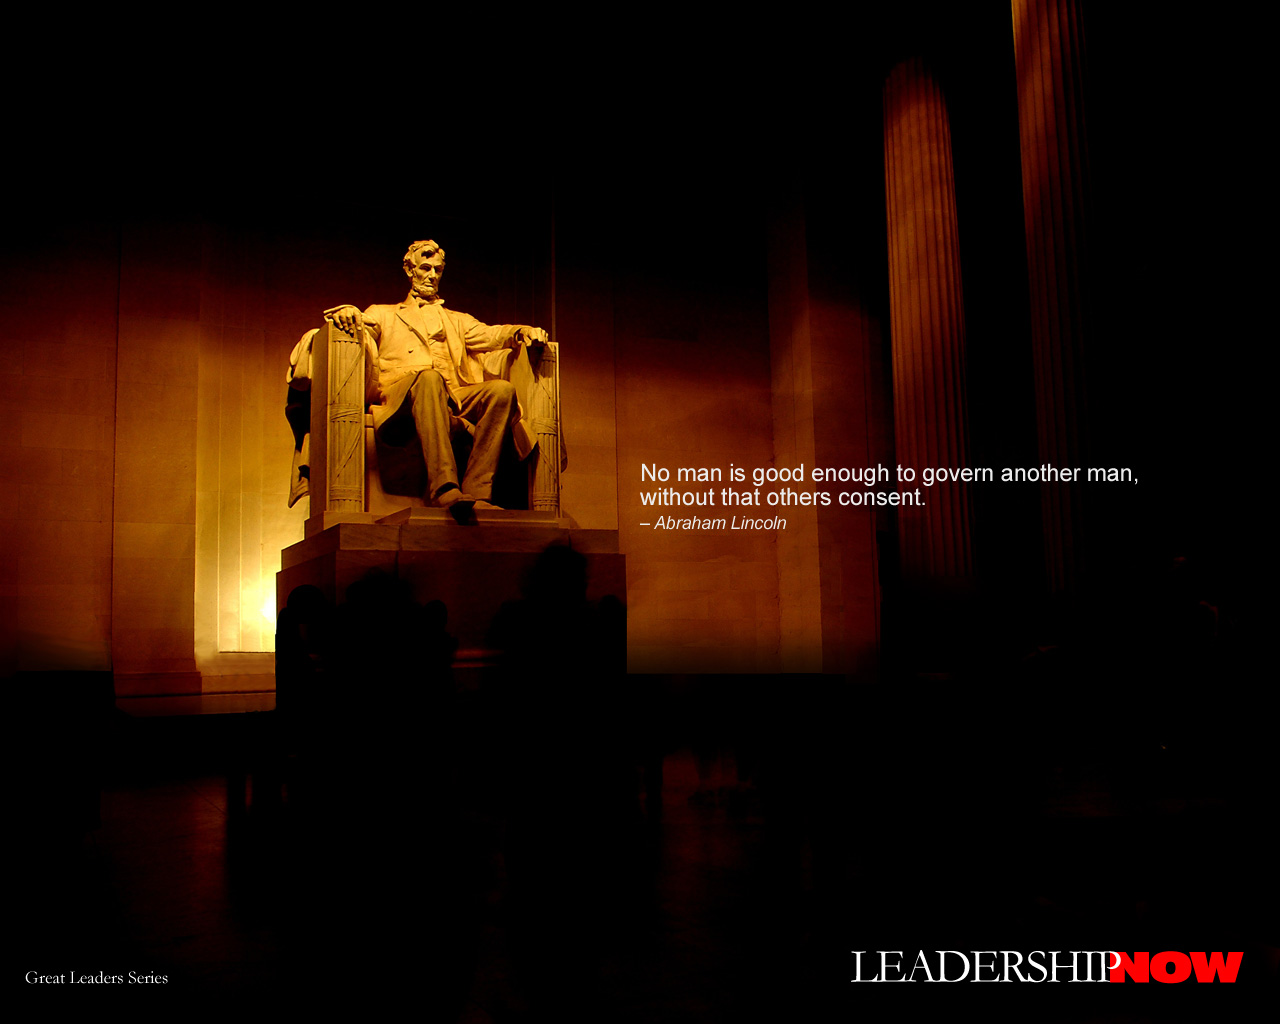 Eleanor Roosevelt Quote Wallpaper Consent Leadershipnow Wallpapers To Download